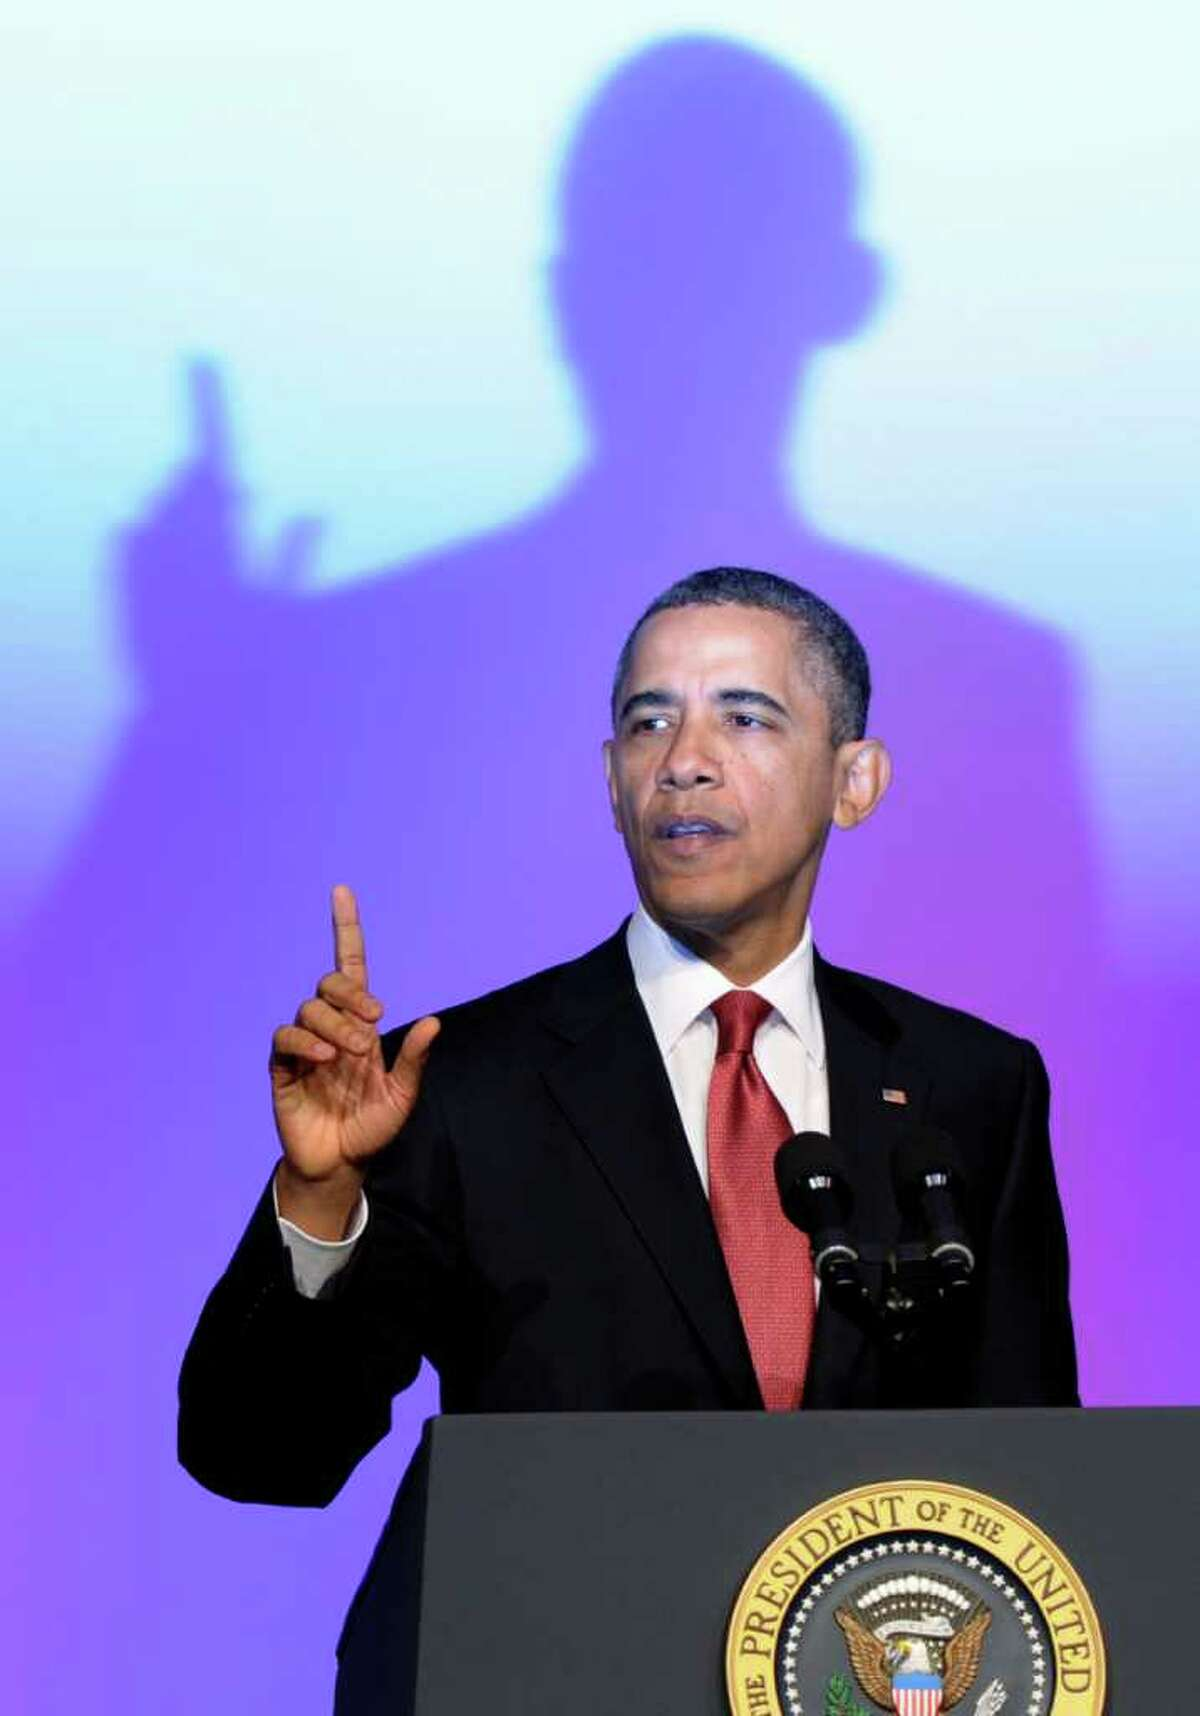 President Barack Obama defends the bailout of the auto industry Tuesday at a union conference.